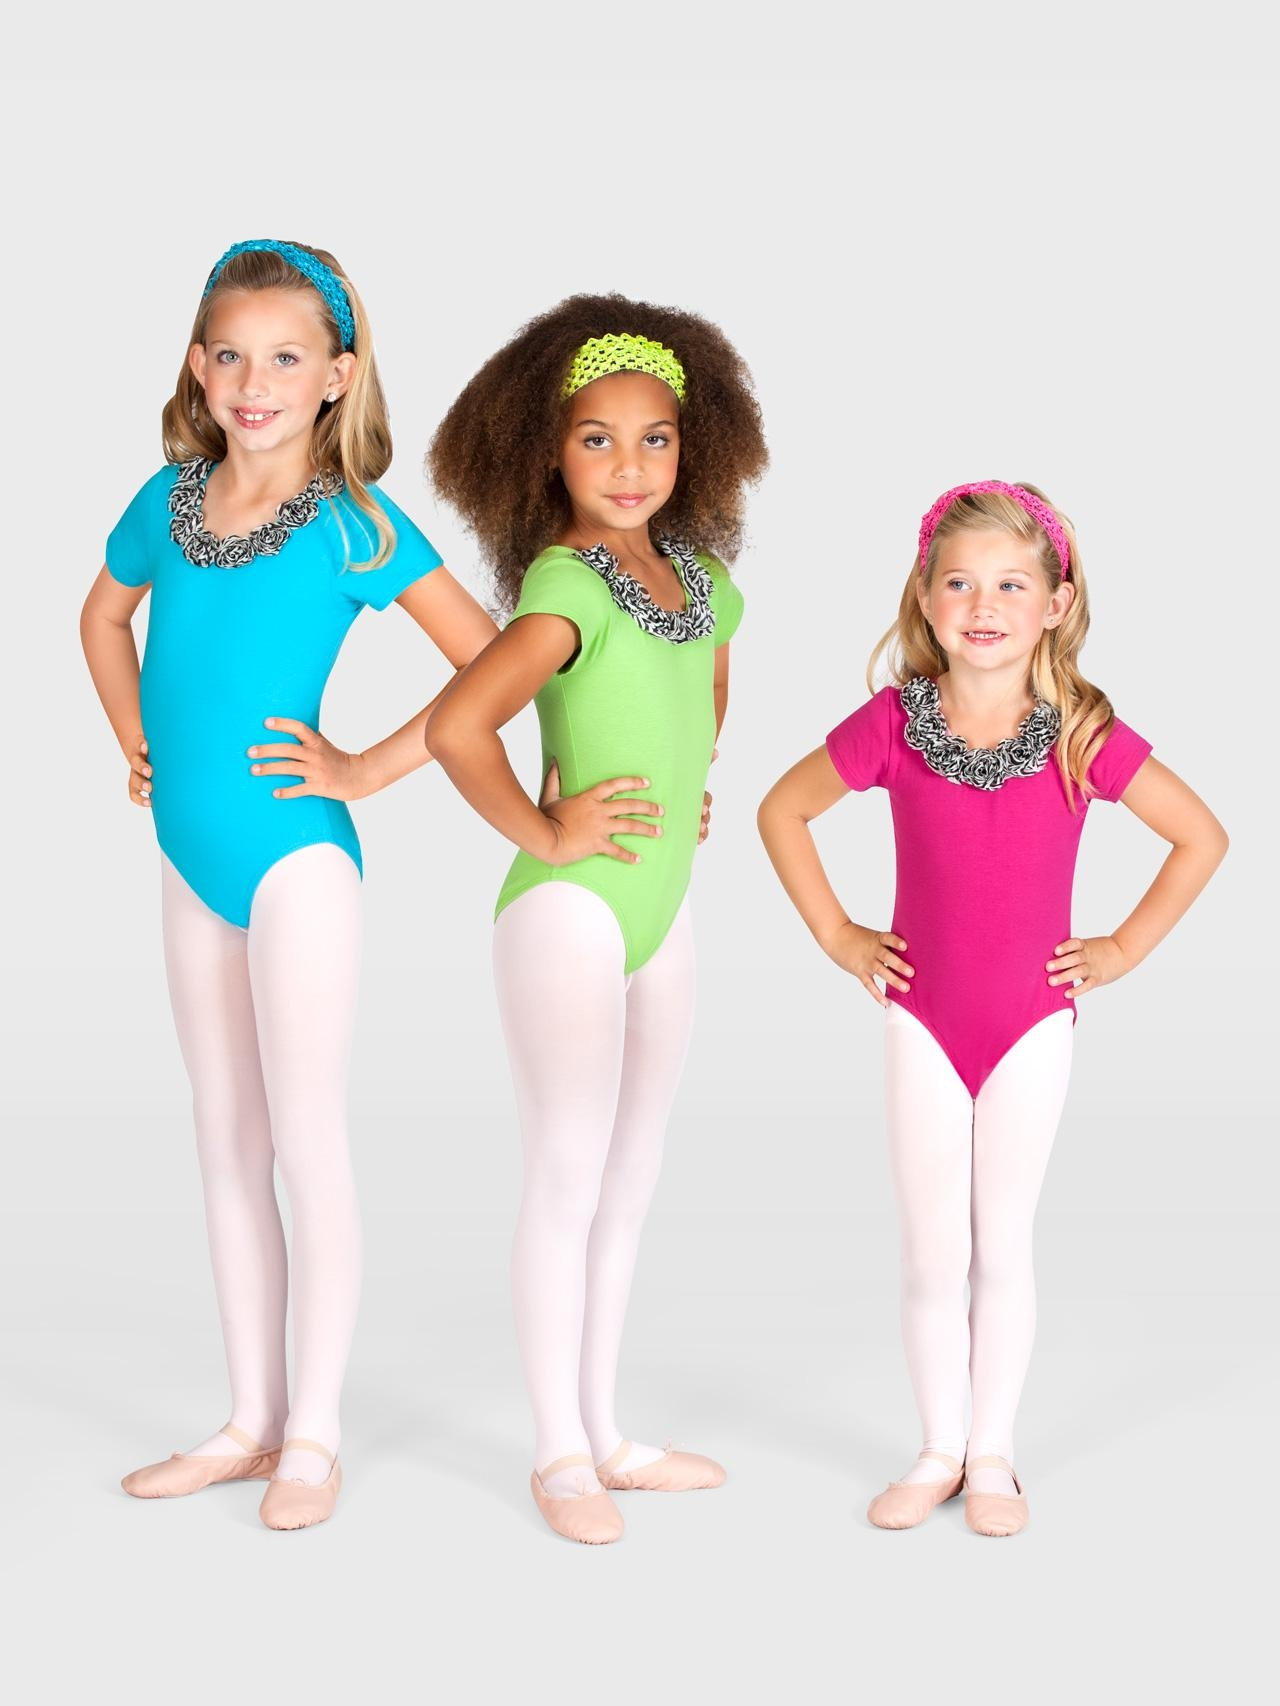 Dance clothes stores near me